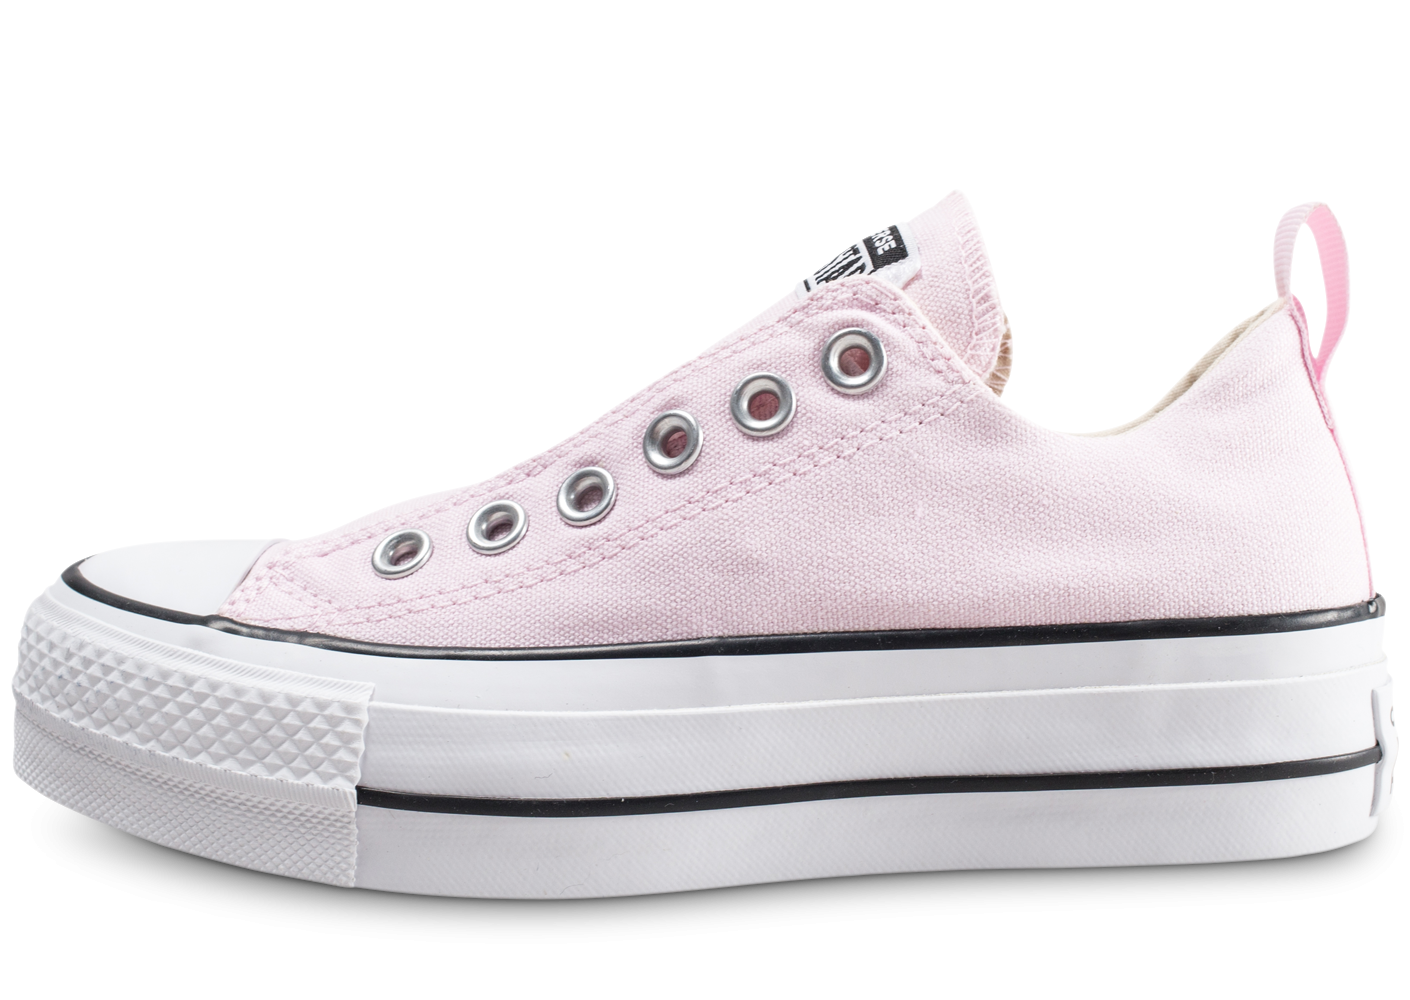 3519f97e39753 Converse Chuck Taylor All Star low Platform rose femme - Chaussures Baskets  femme - Chausport